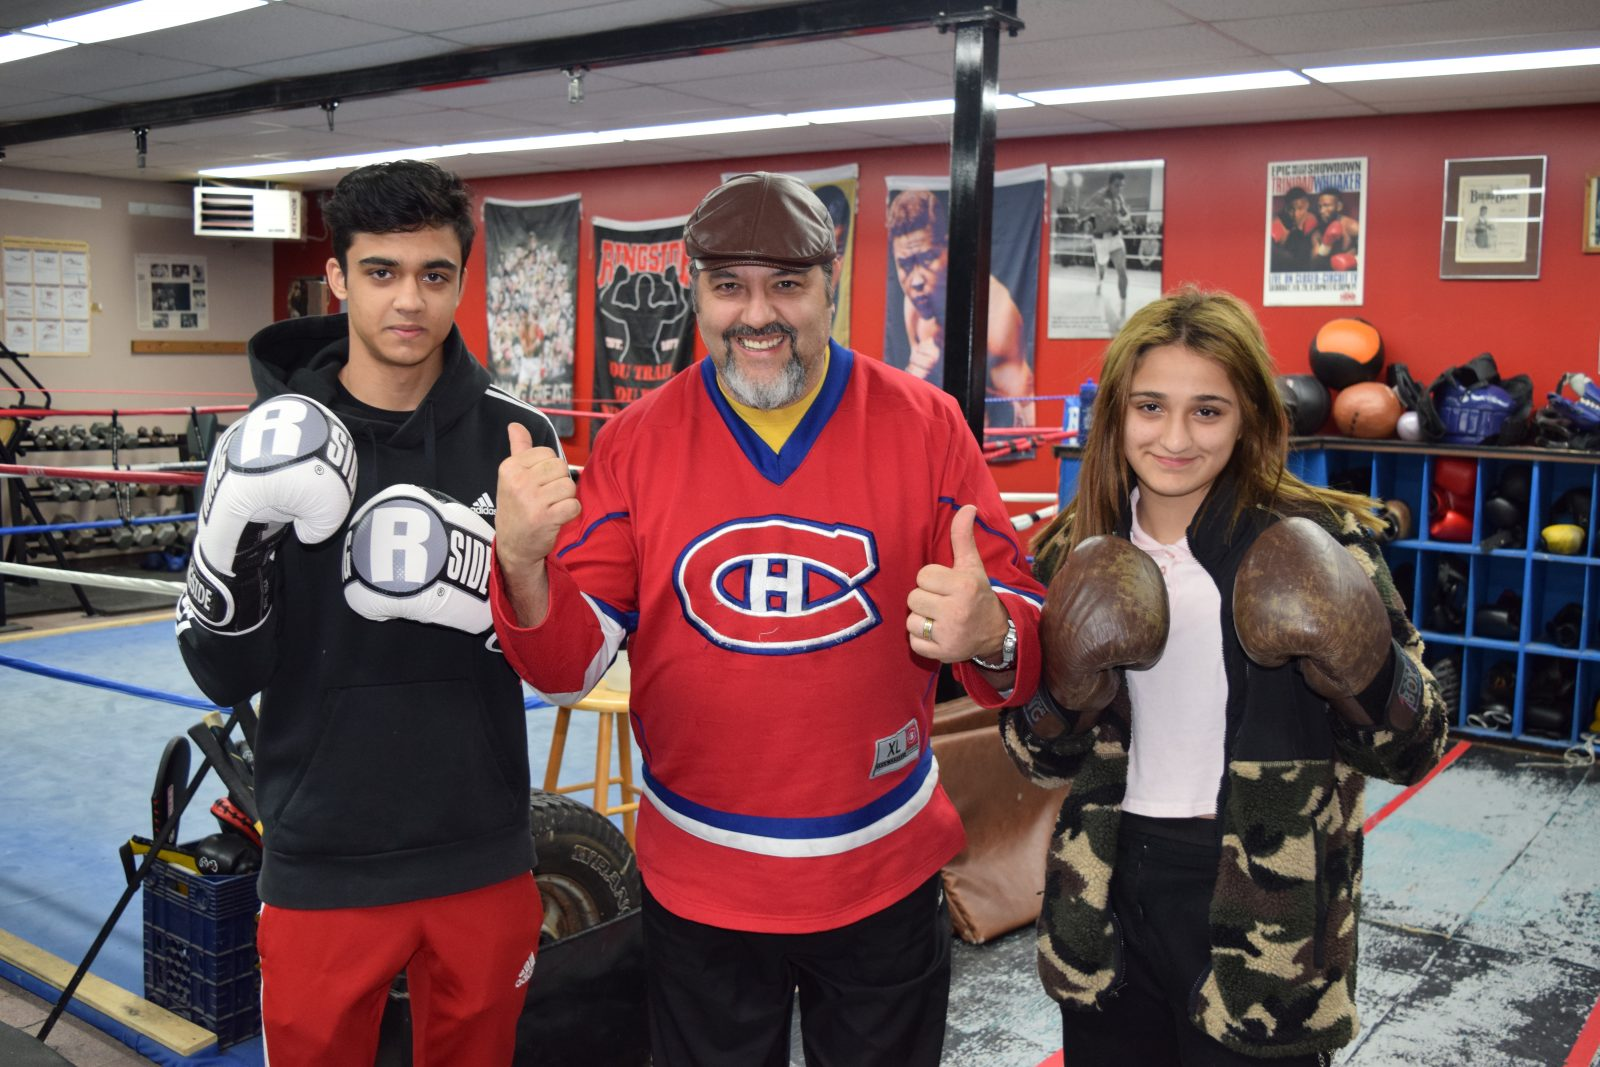 Waheed's come home with hardware from boxing nationals